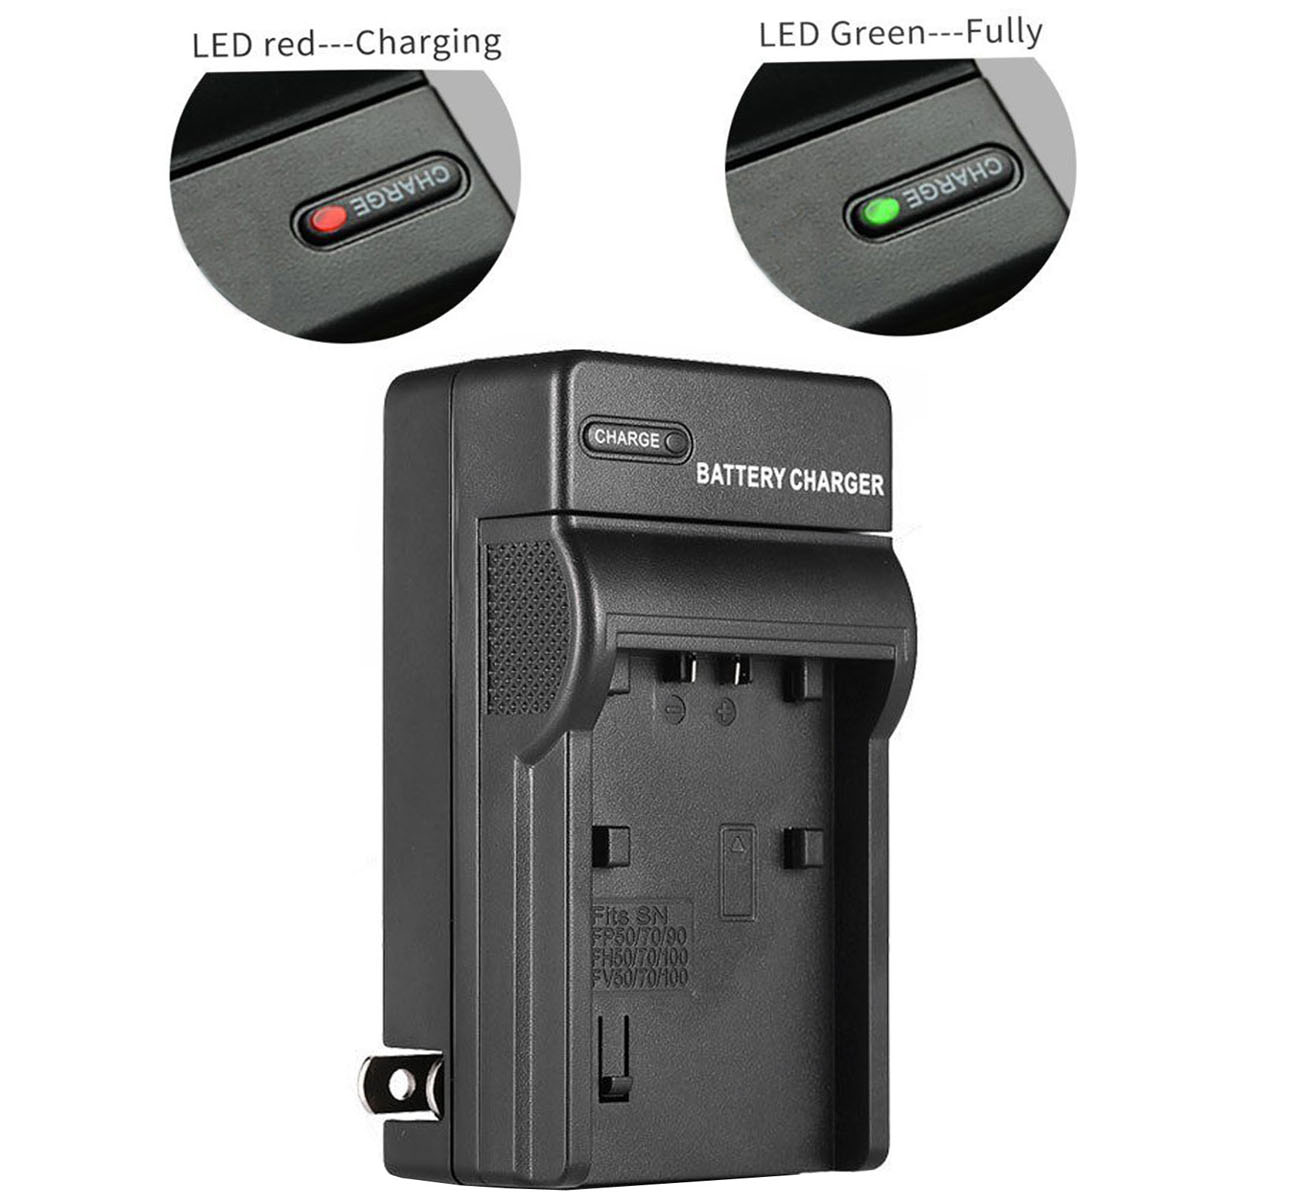 CCD-TRV26 CCD-TRV25 CCD-TRV27 Handycam Camcorder AC Power Adapter Charger for Sony CCD-TRV23